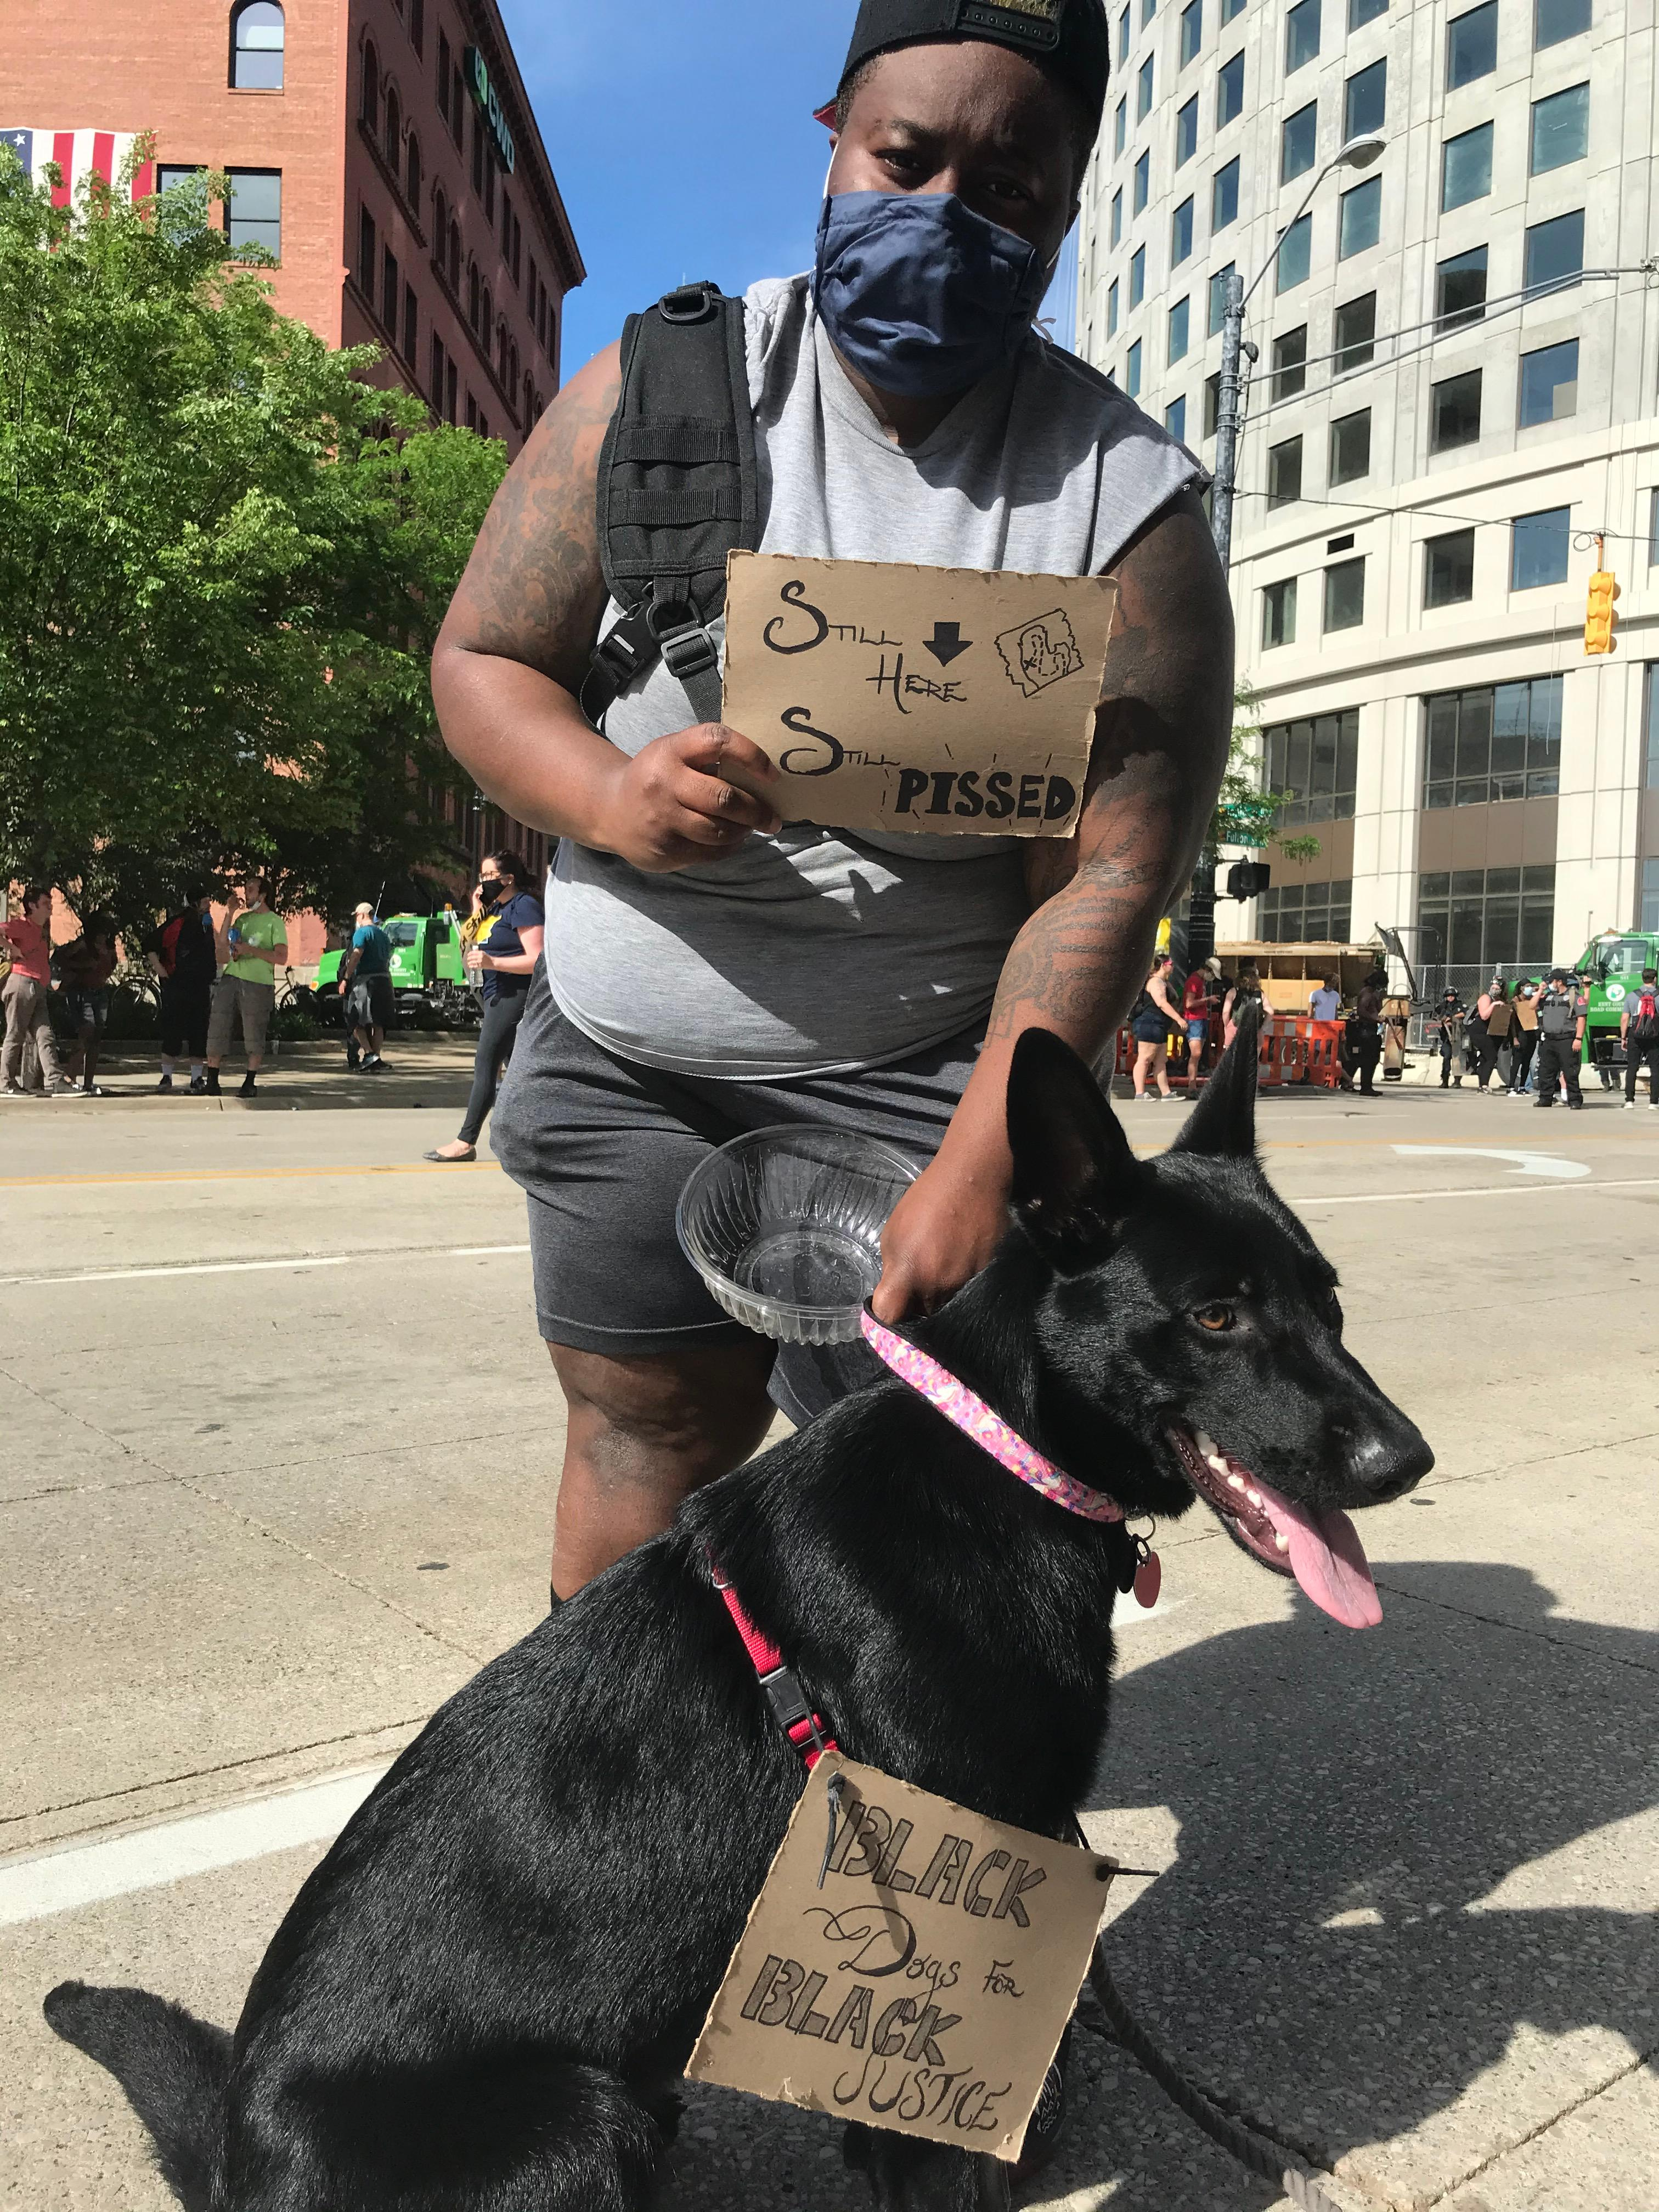 Both groups of protesters in Grand Rapids were advocating for change during the protests on June 3, 2020. (WWMT/Tarvarious Haywood)